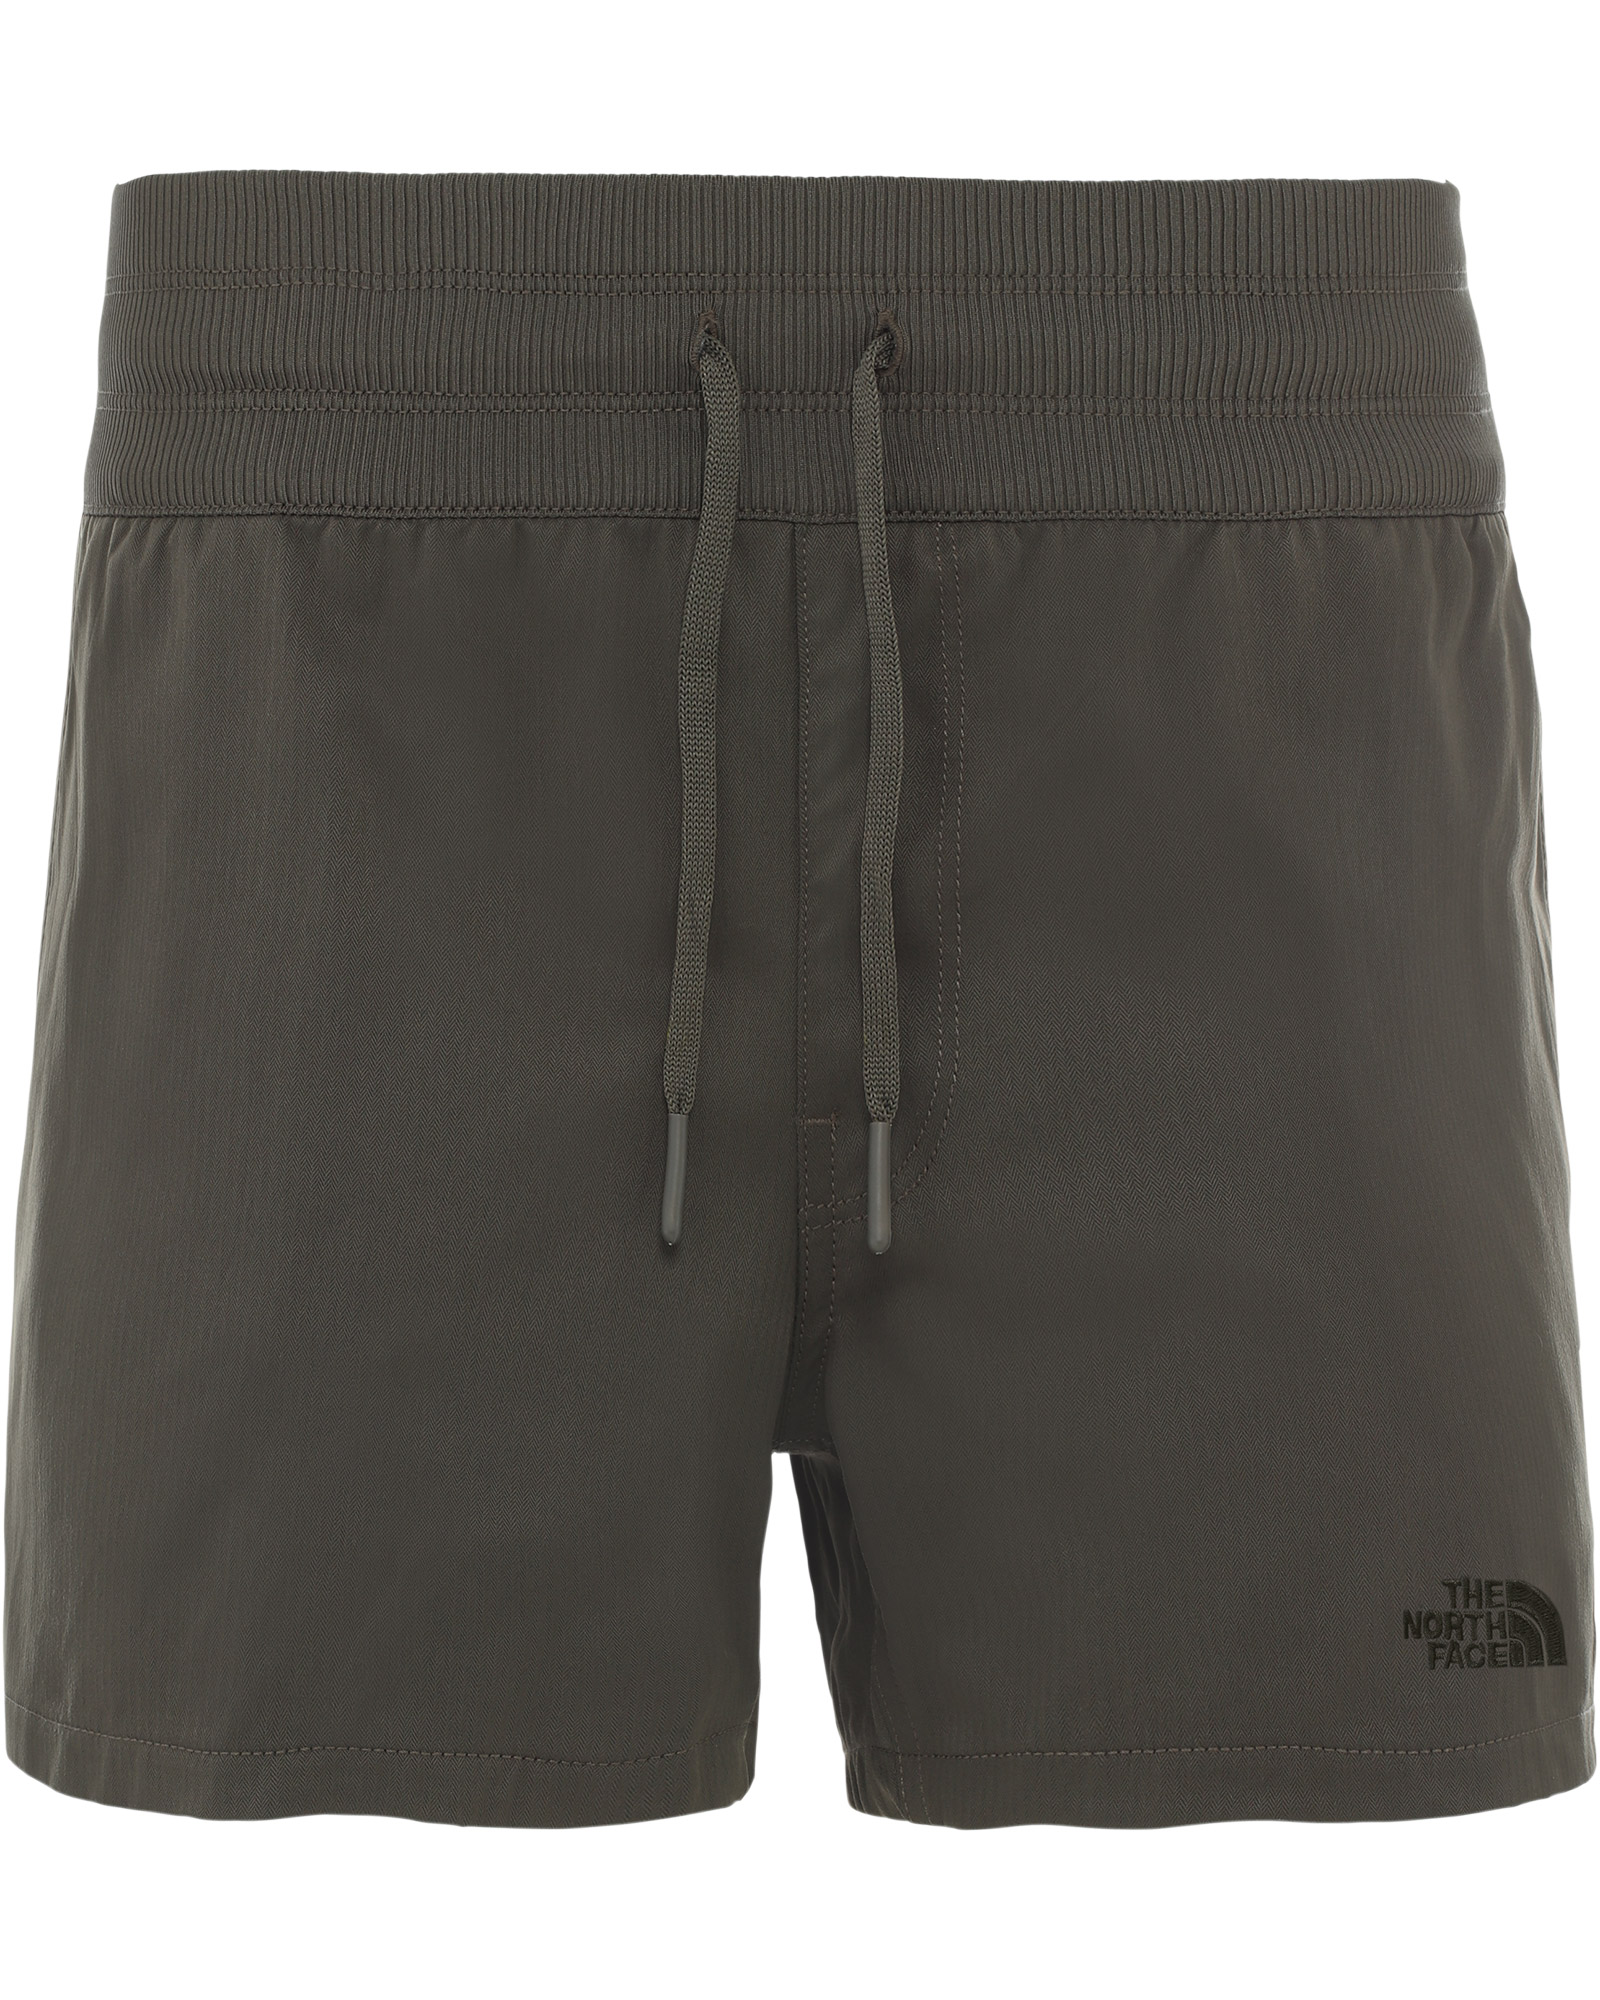 The North Face Women's Aphrodite Shorts 0